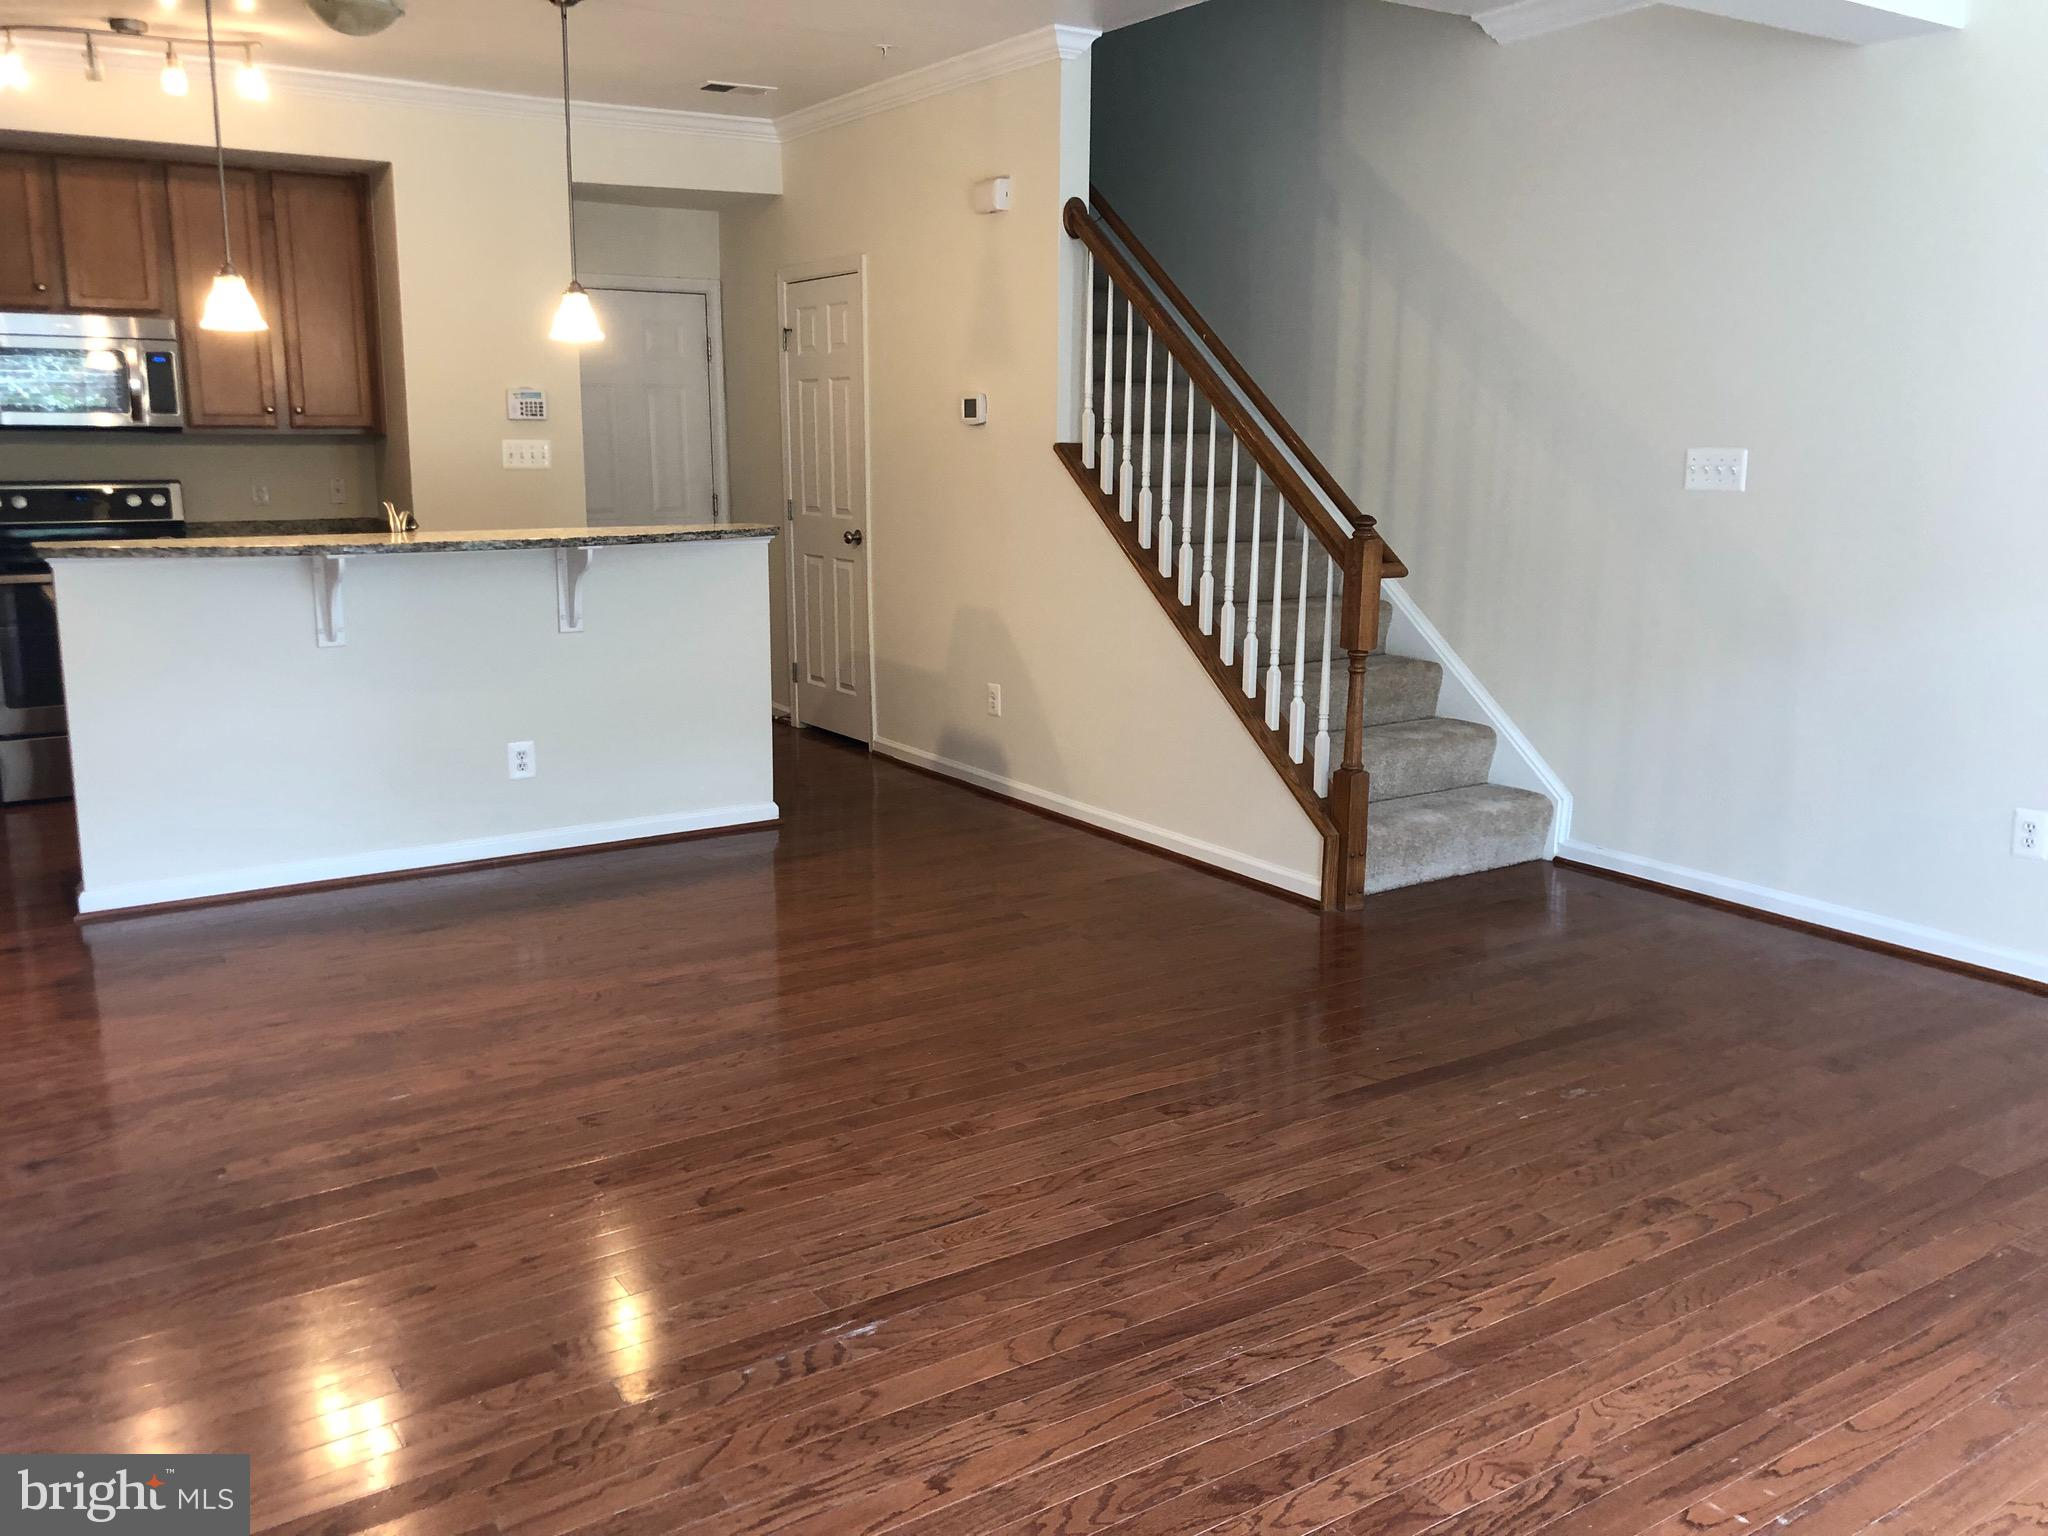 Great 3 bed 2.5 condo wood flooring, new carpet,   Granite countertops stainless steel appliances. vacant show anytime.